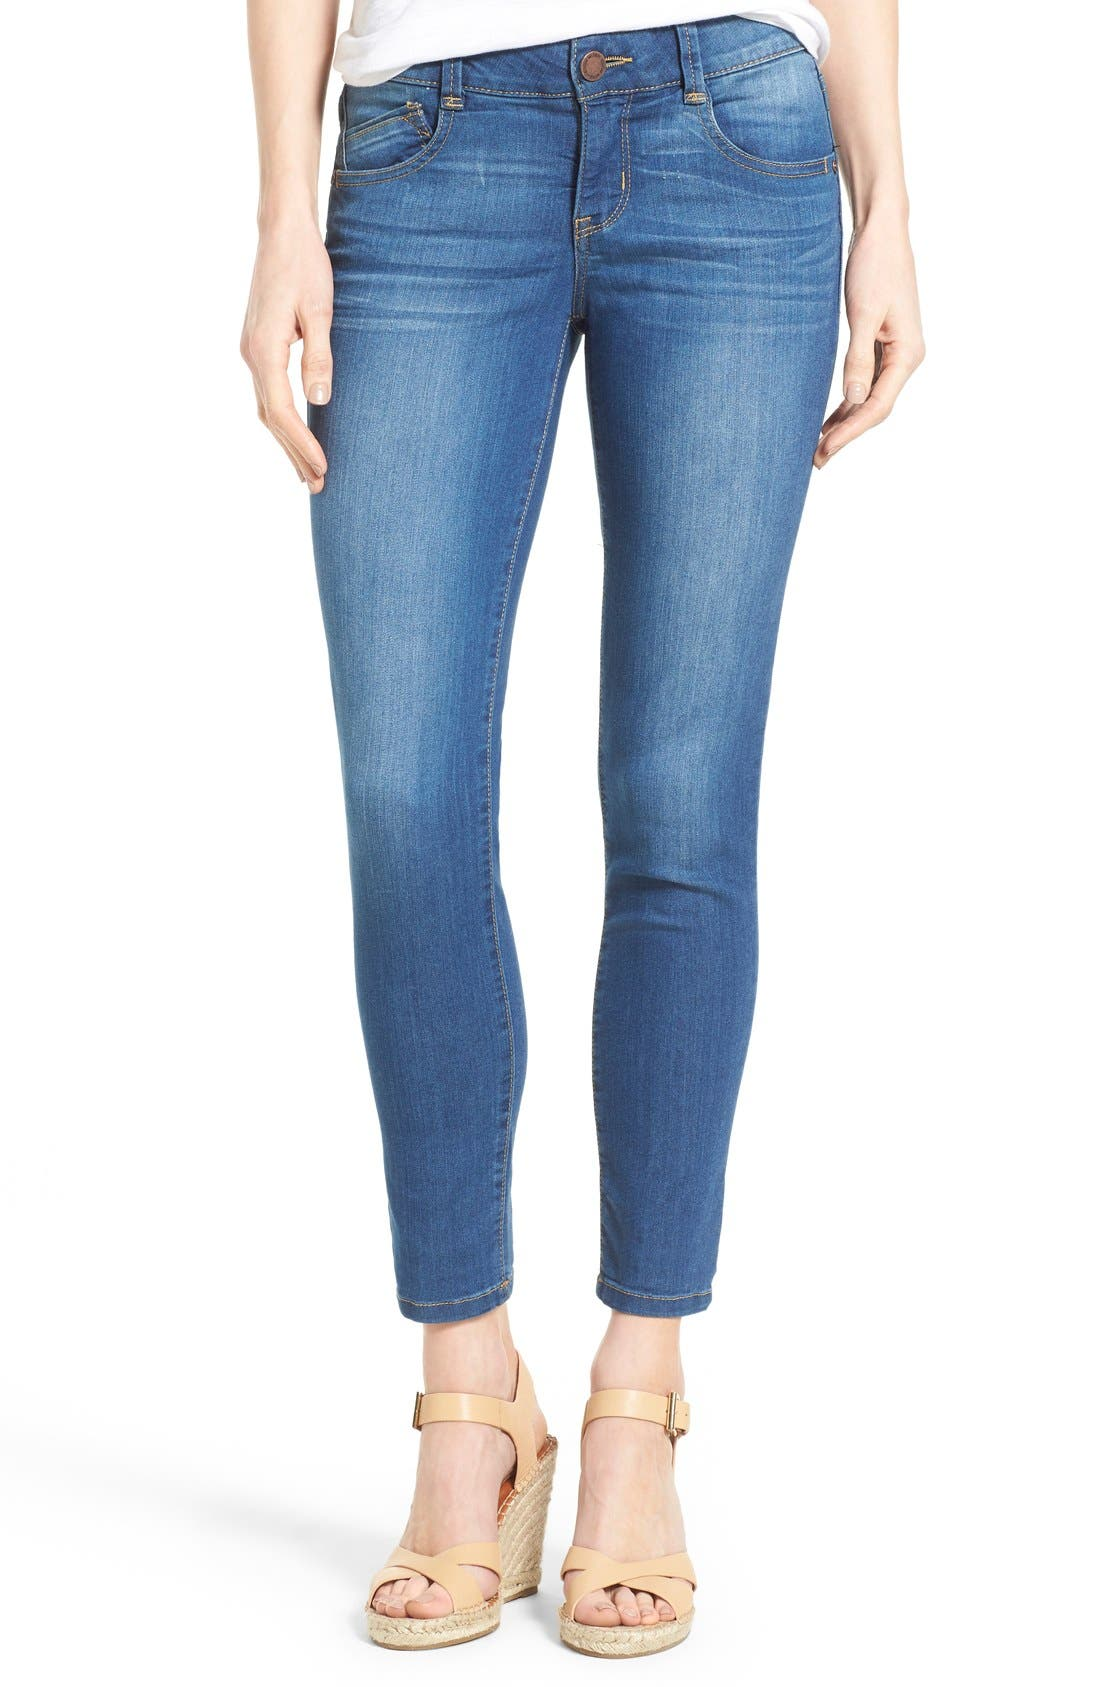 'Ab-solution' Stretch Ankle Skinny Jeans,                         Main,                         color, Blue